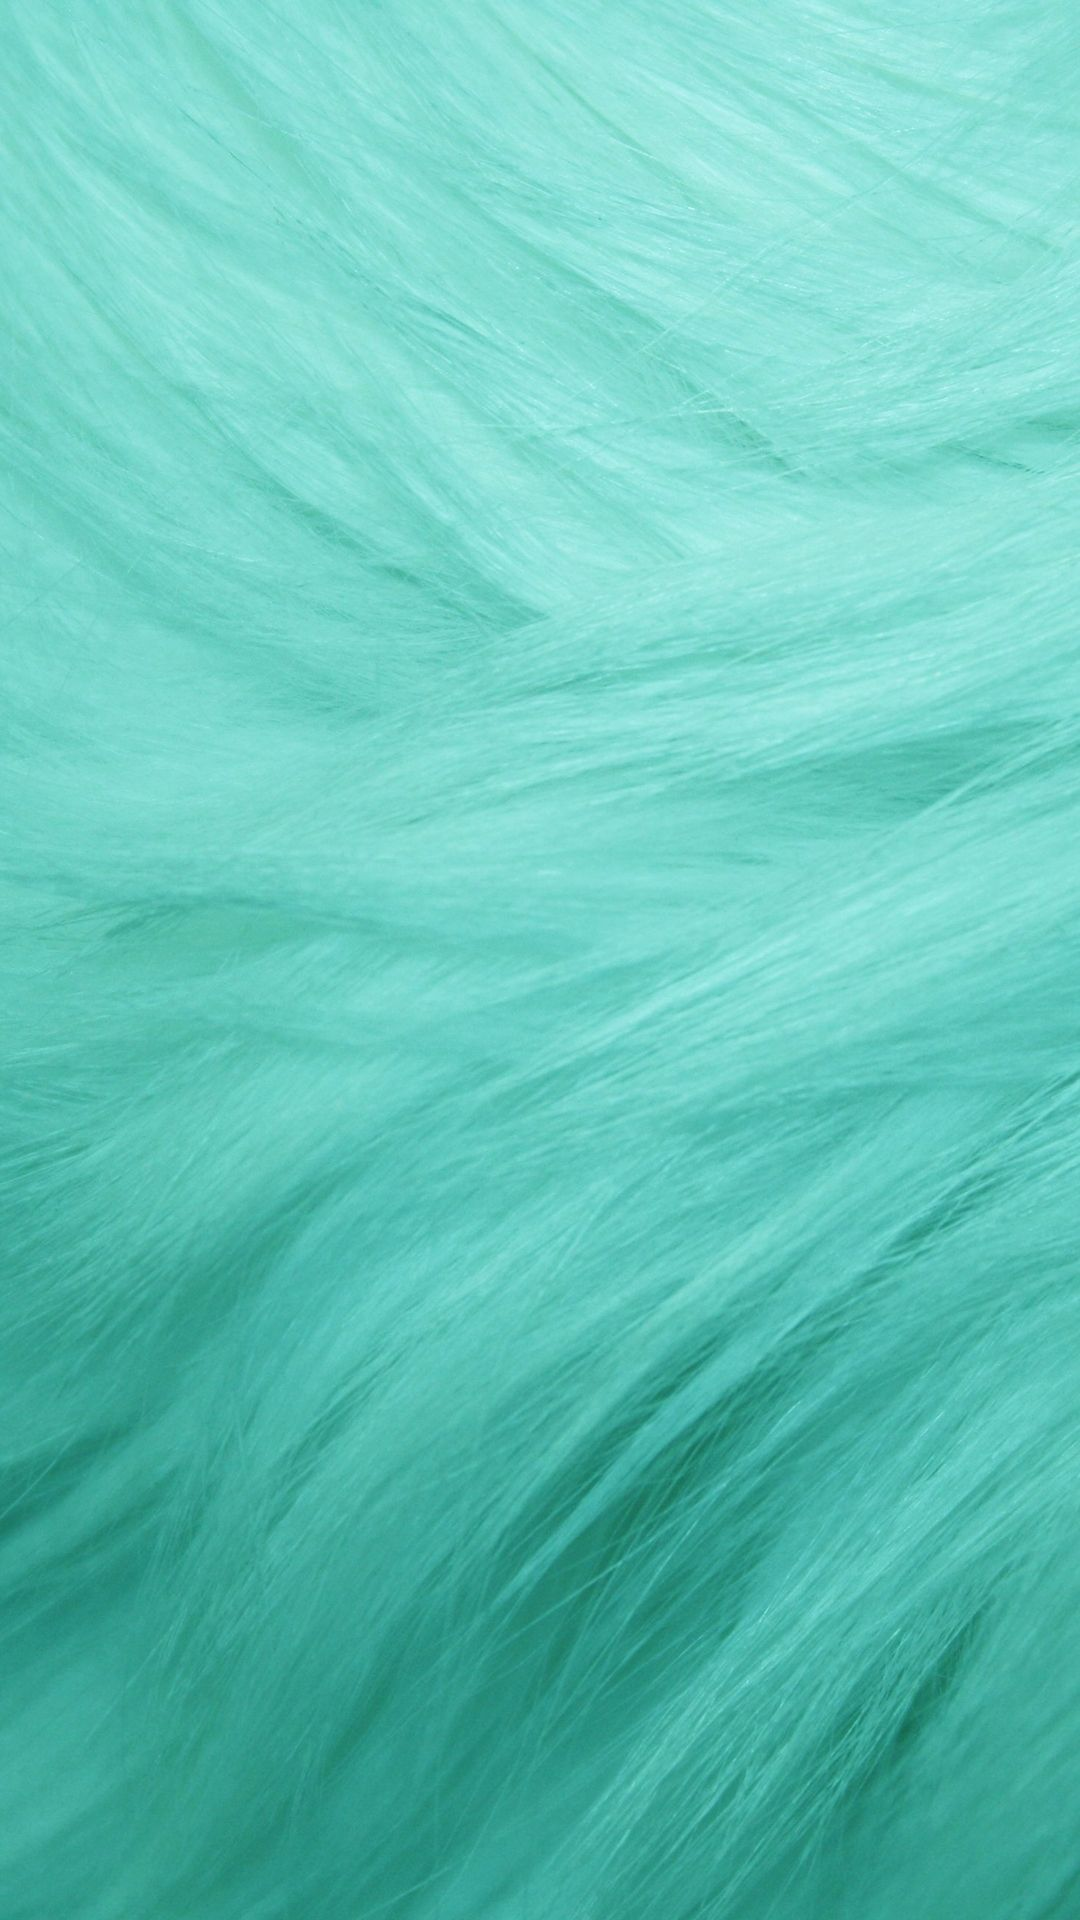 Teal Fur Texture - Tap to see more fluffy wallpapers! - @mobile9 | iPhone 8 & iPhone X ...